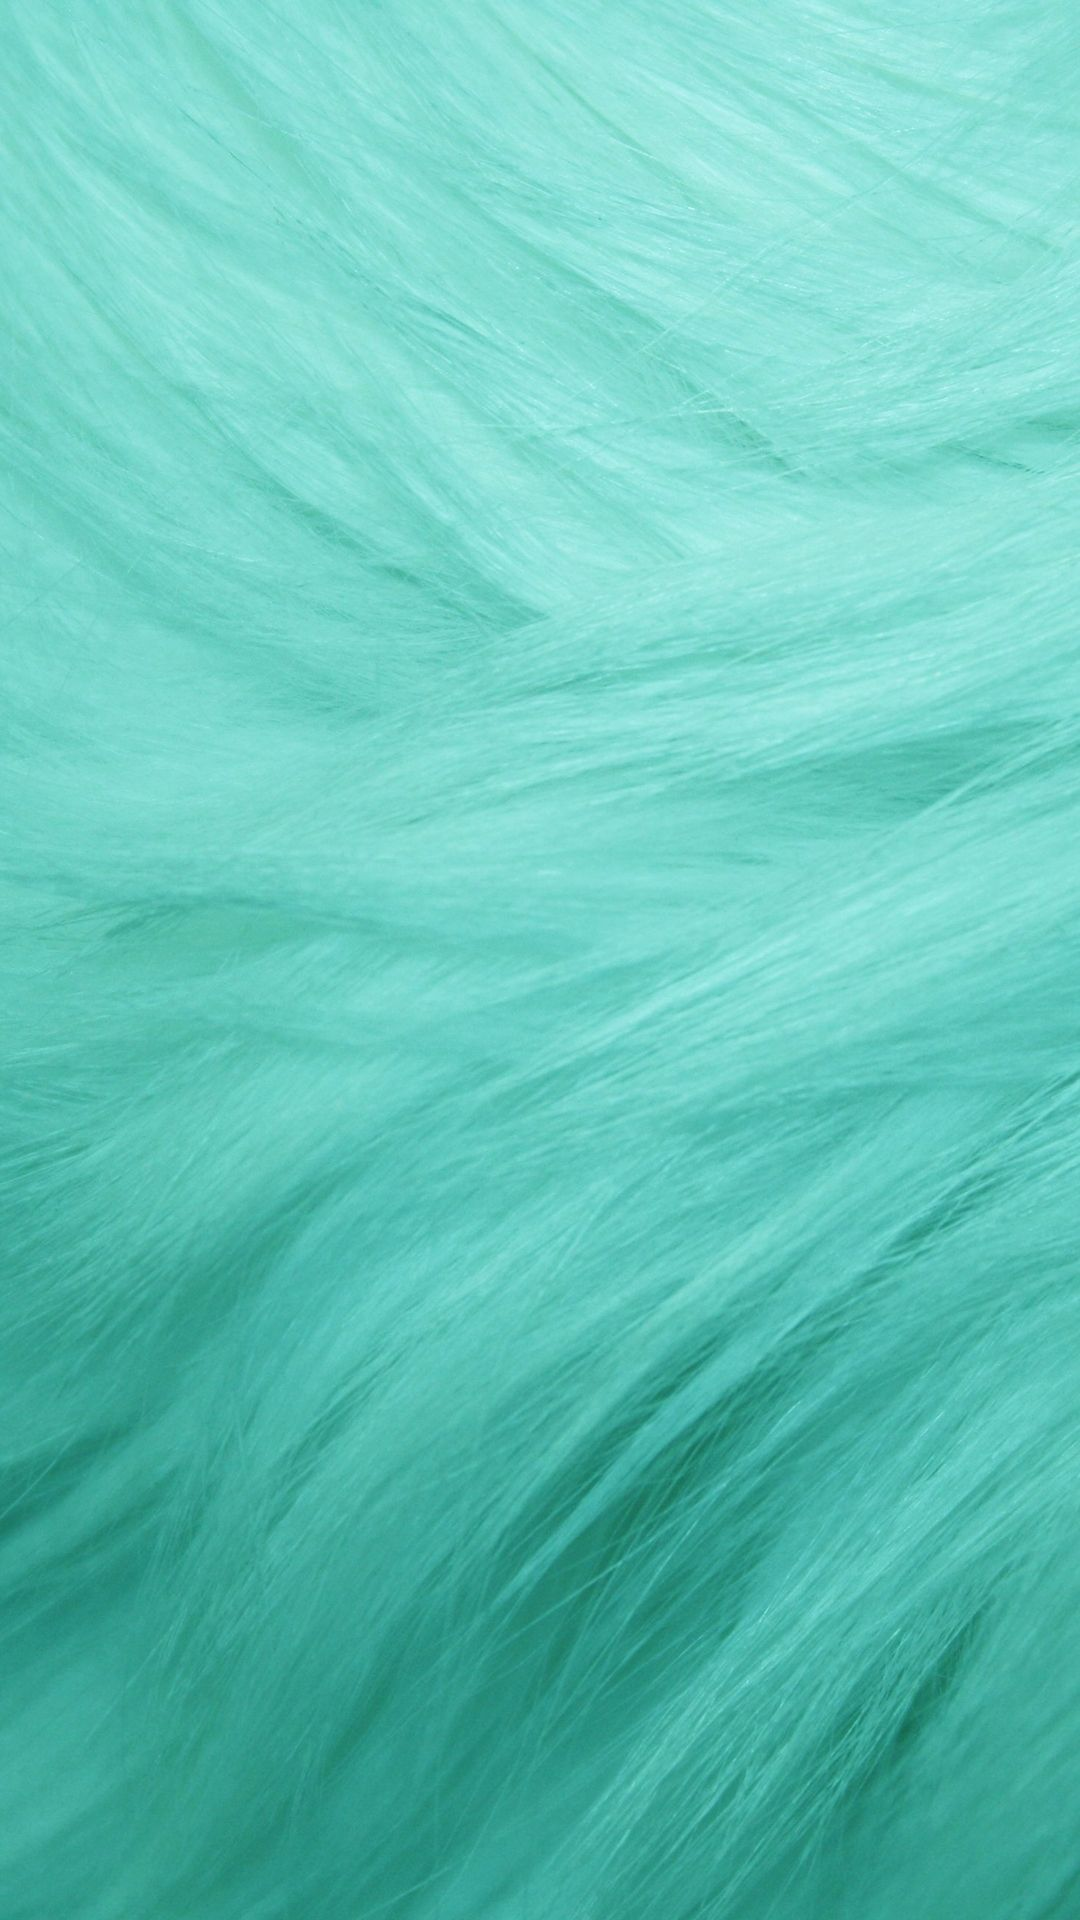 Teal Fur Texture - Tap to see more fluffy wallpapers! - @mobile9 | iPhone 8 & iPhone X ...